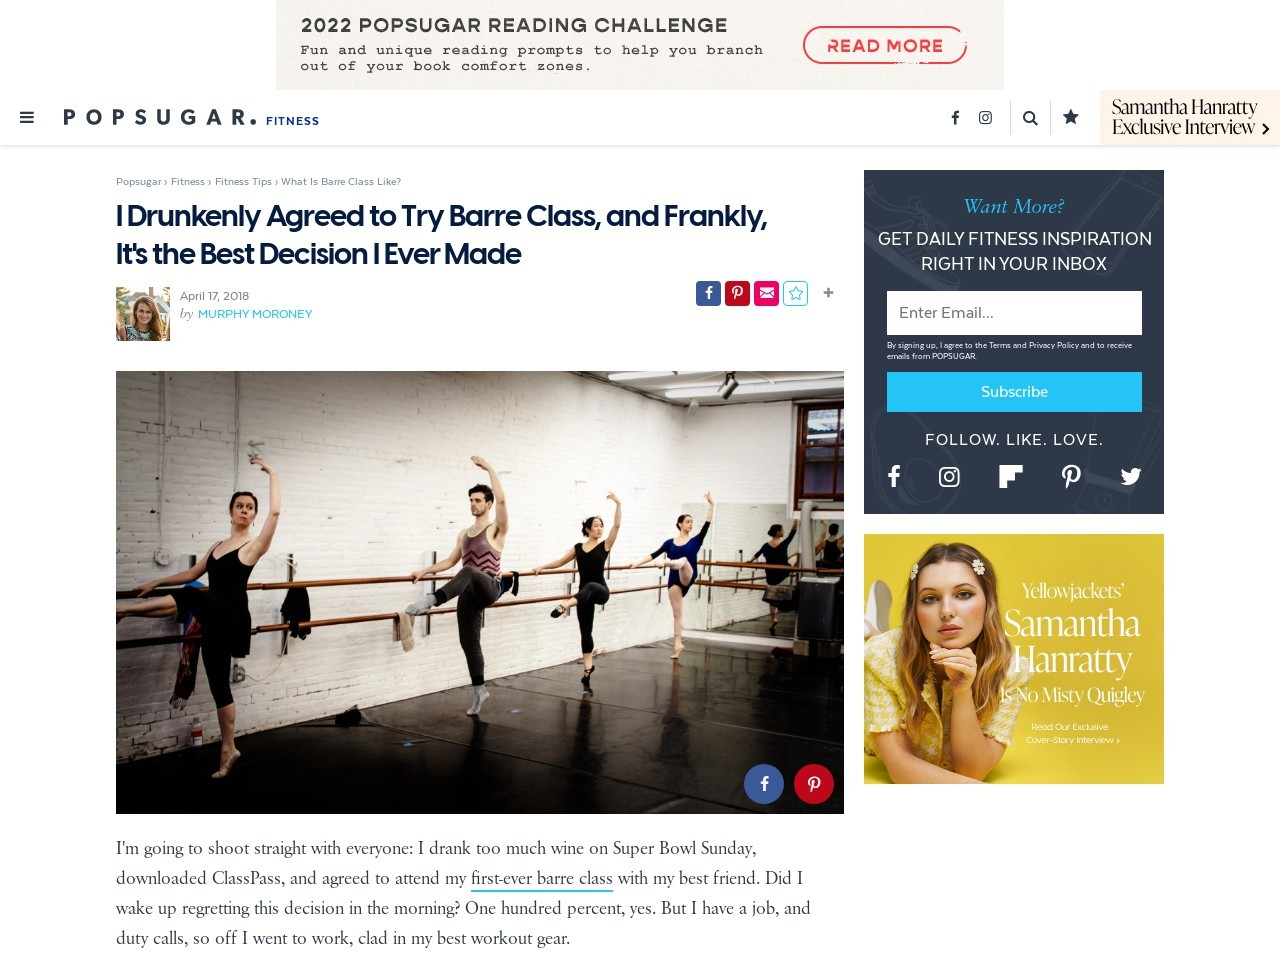 I Drunkenly Agreed to Try Barre Class, and Frankly Its the Greatest…